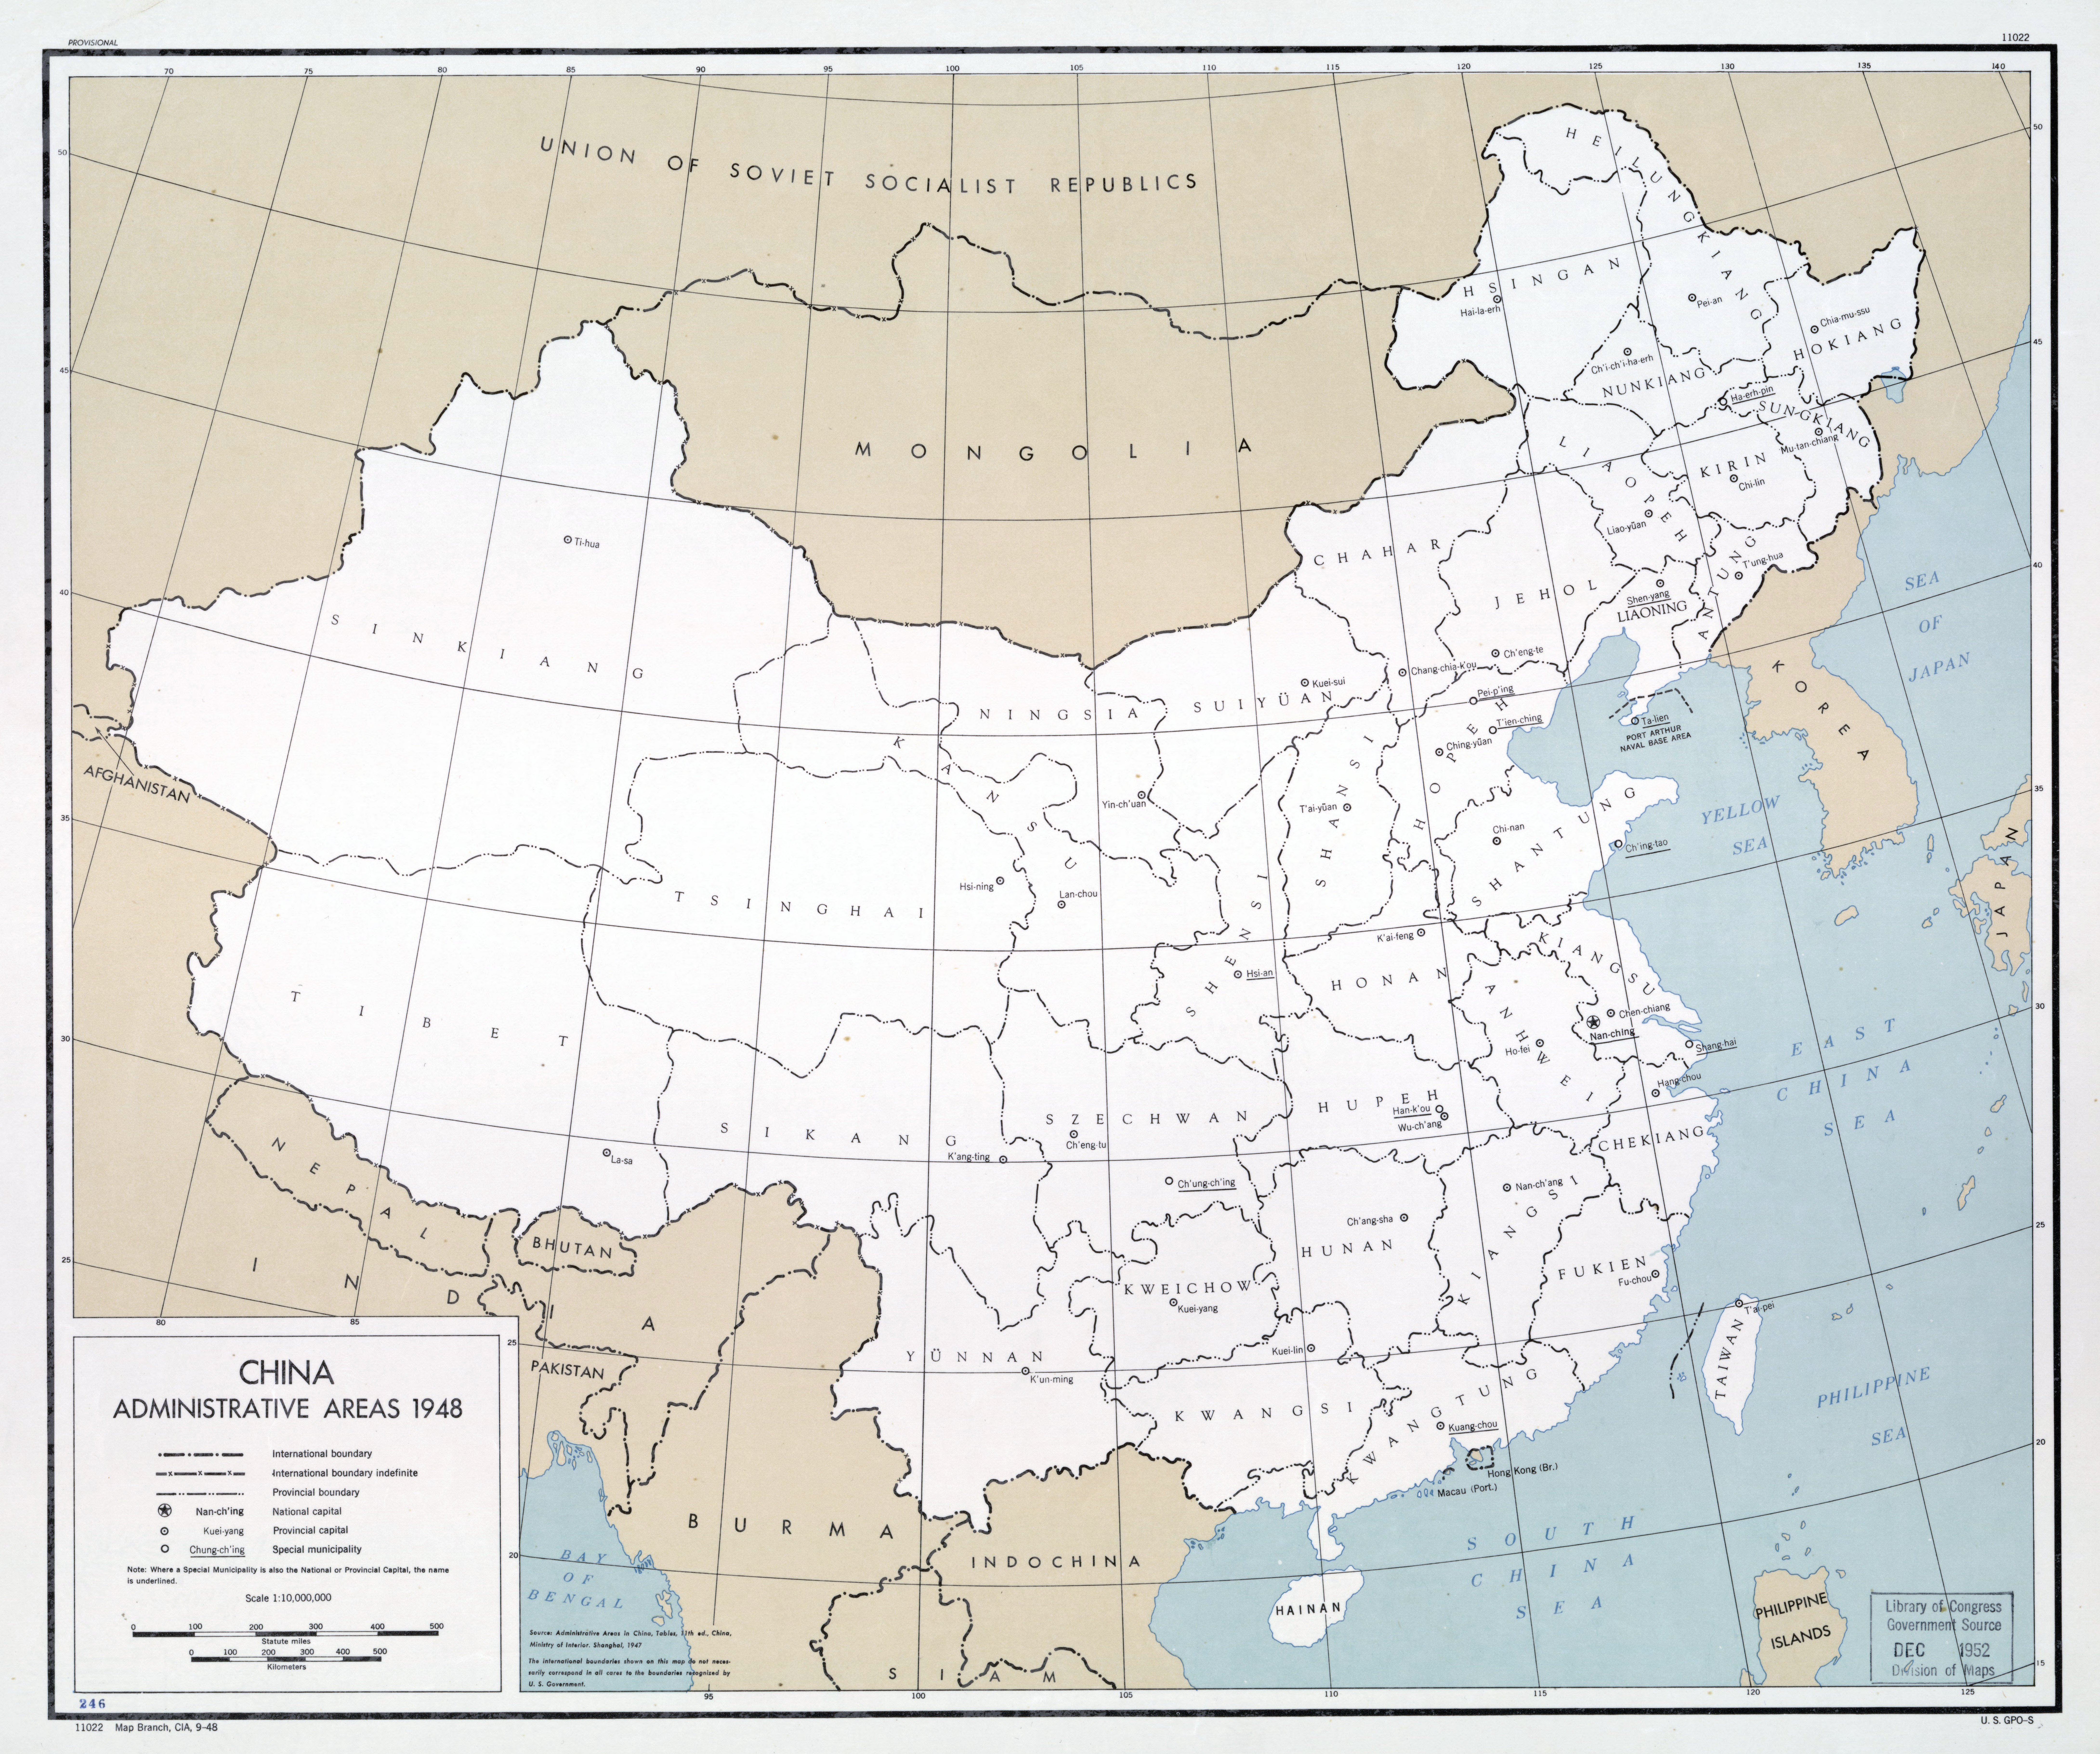 1948 World Map.Large Scale China Administrative Areas Map 1948 China Asia